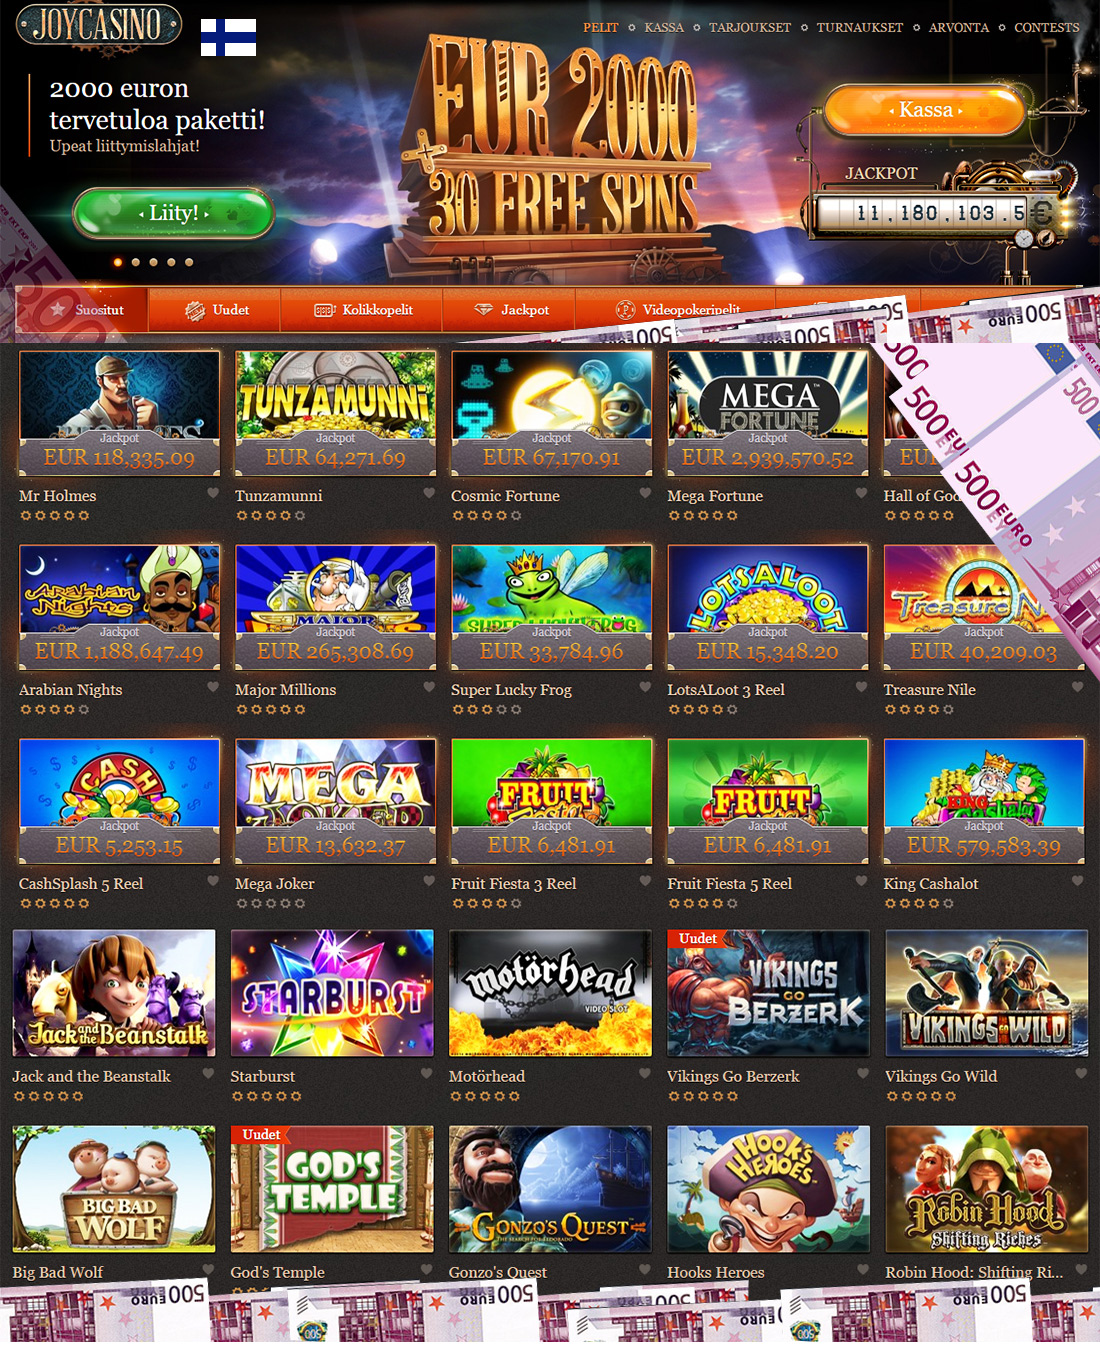 Online casino welcome bonus